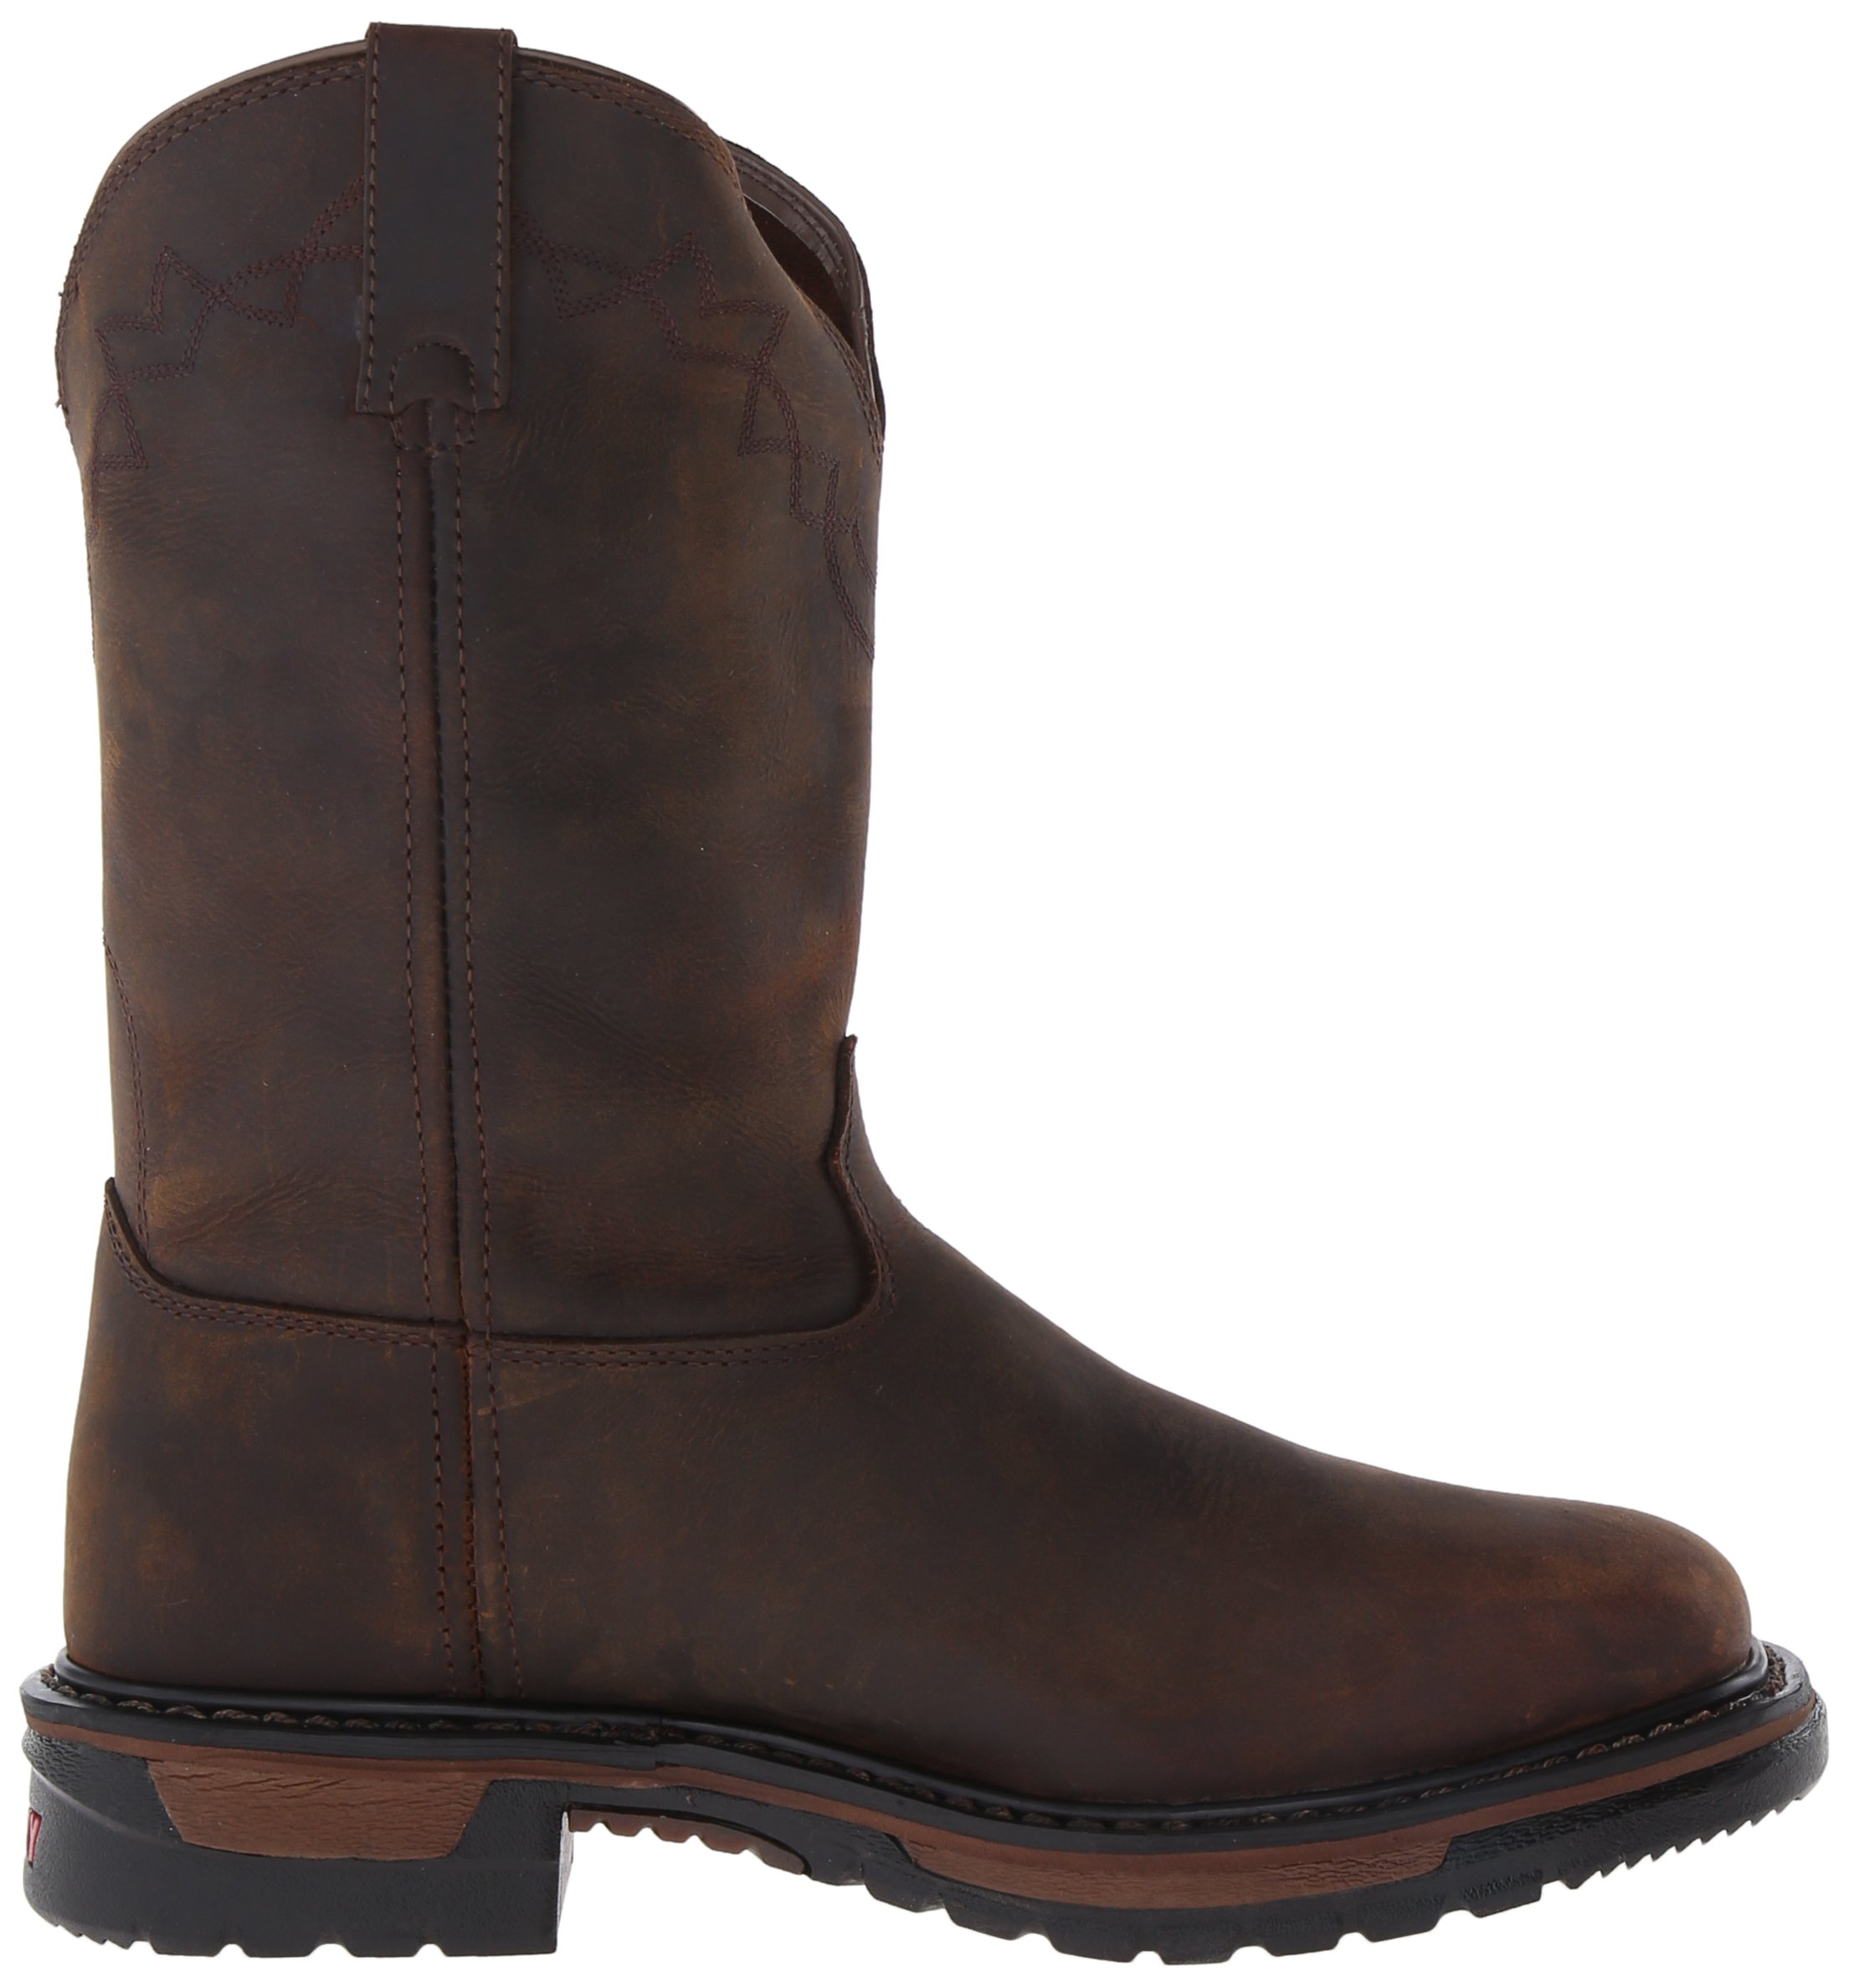 Rocky Men's RKW0117 Boot, Dark Brown, 10 M US by Rocky (Image #6)